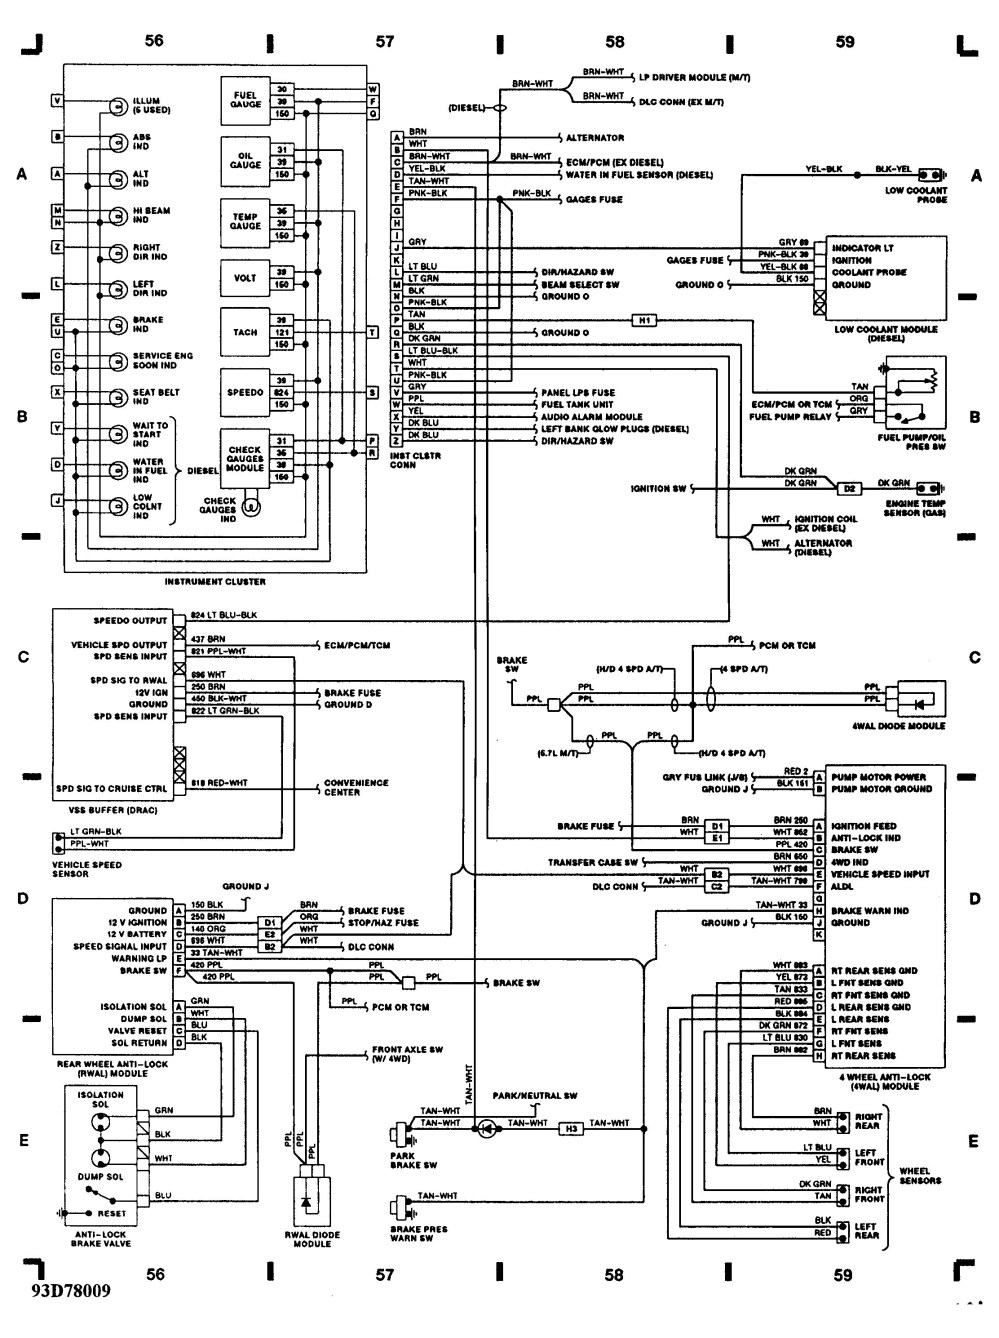 medium resolution of chevy 350 wiring harness diagram wiring diagram note chevy 350 5 7 tbi wiring harness diagram